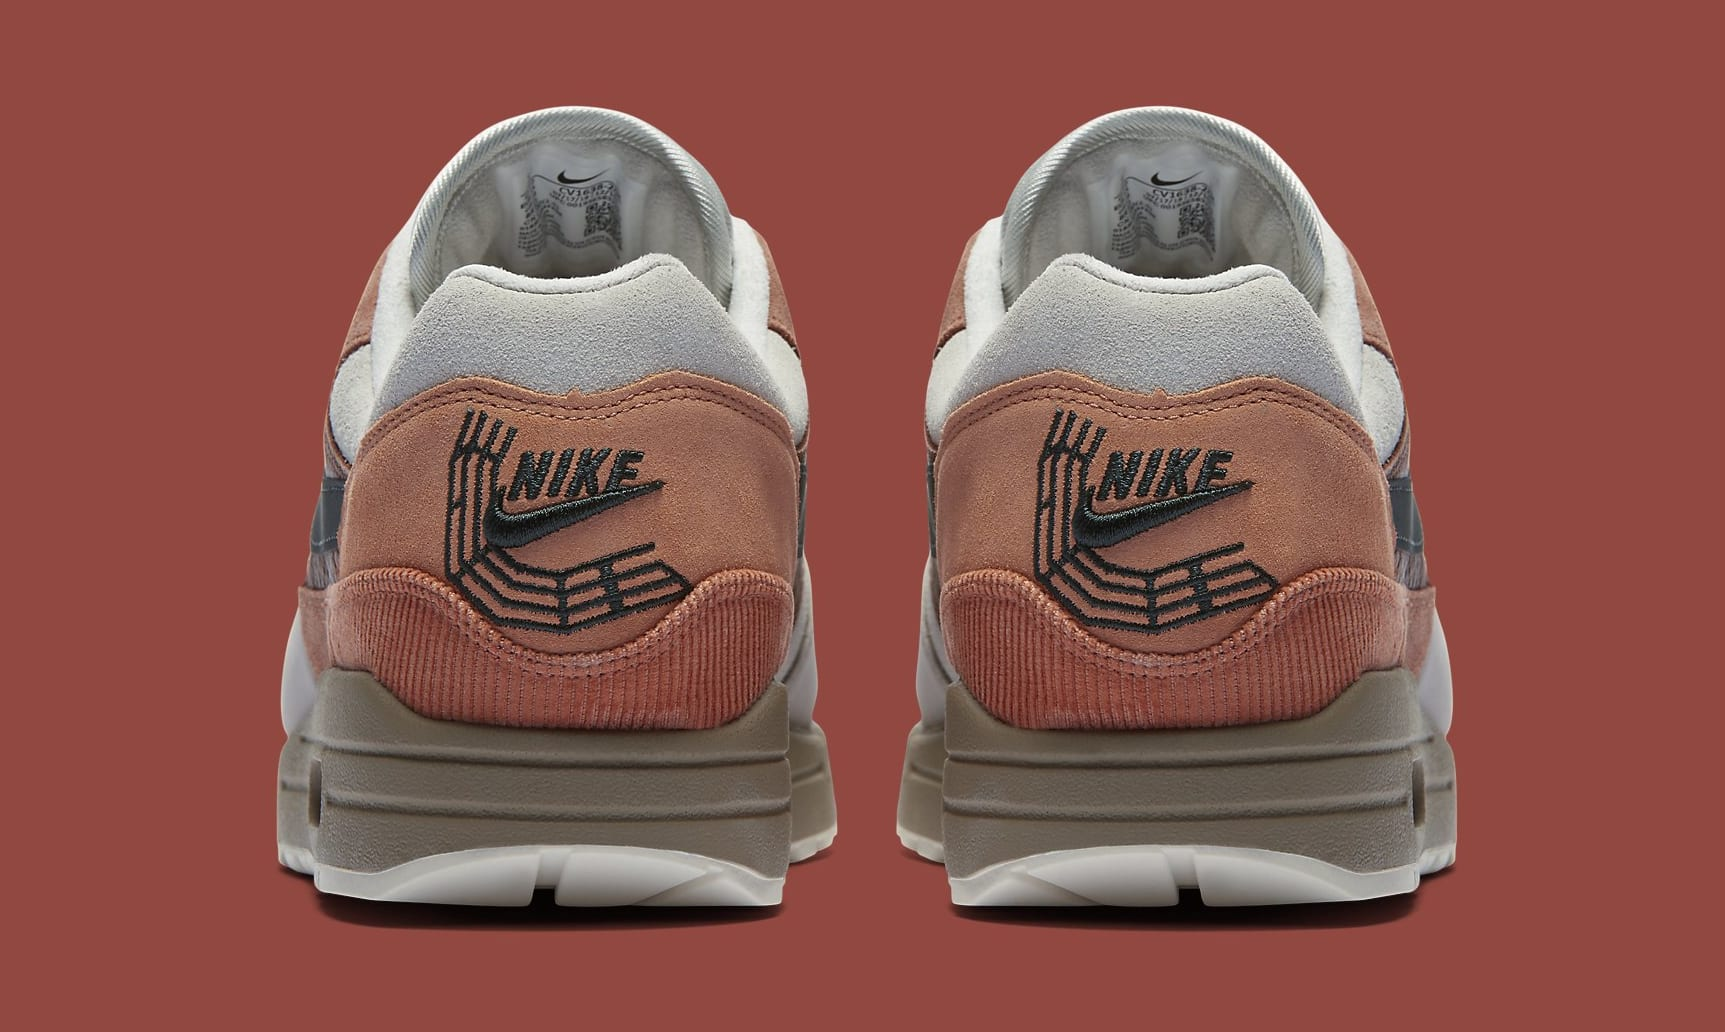 Nike Air Max 1 City Pack Pays Tribute To London Amsterdam